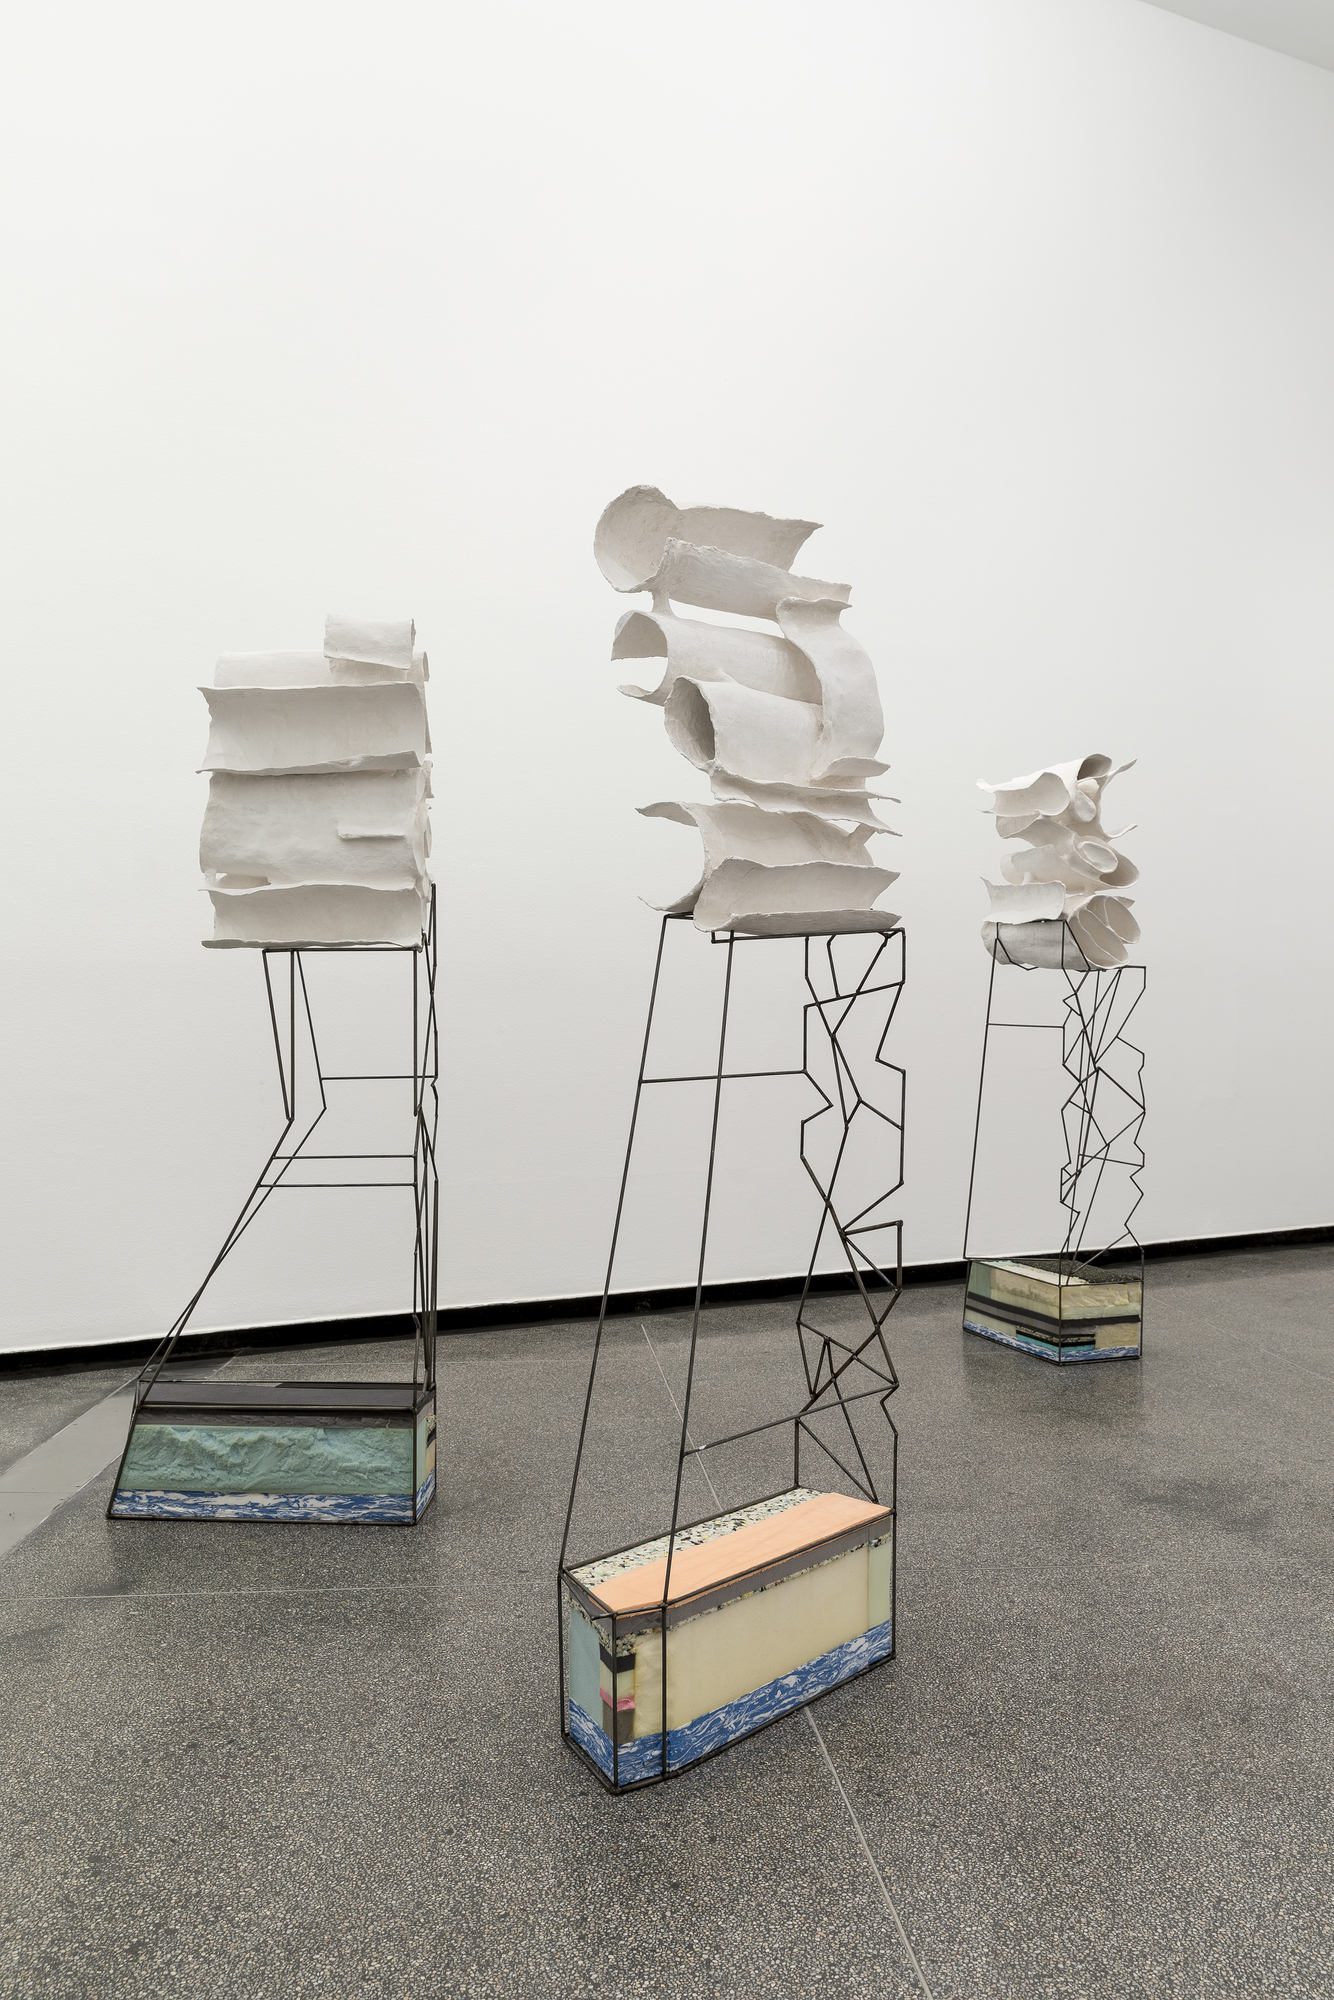 Dwelling-Poetically-at-Australian-Centre-for-Contemporary-Art-Works-52.jpg